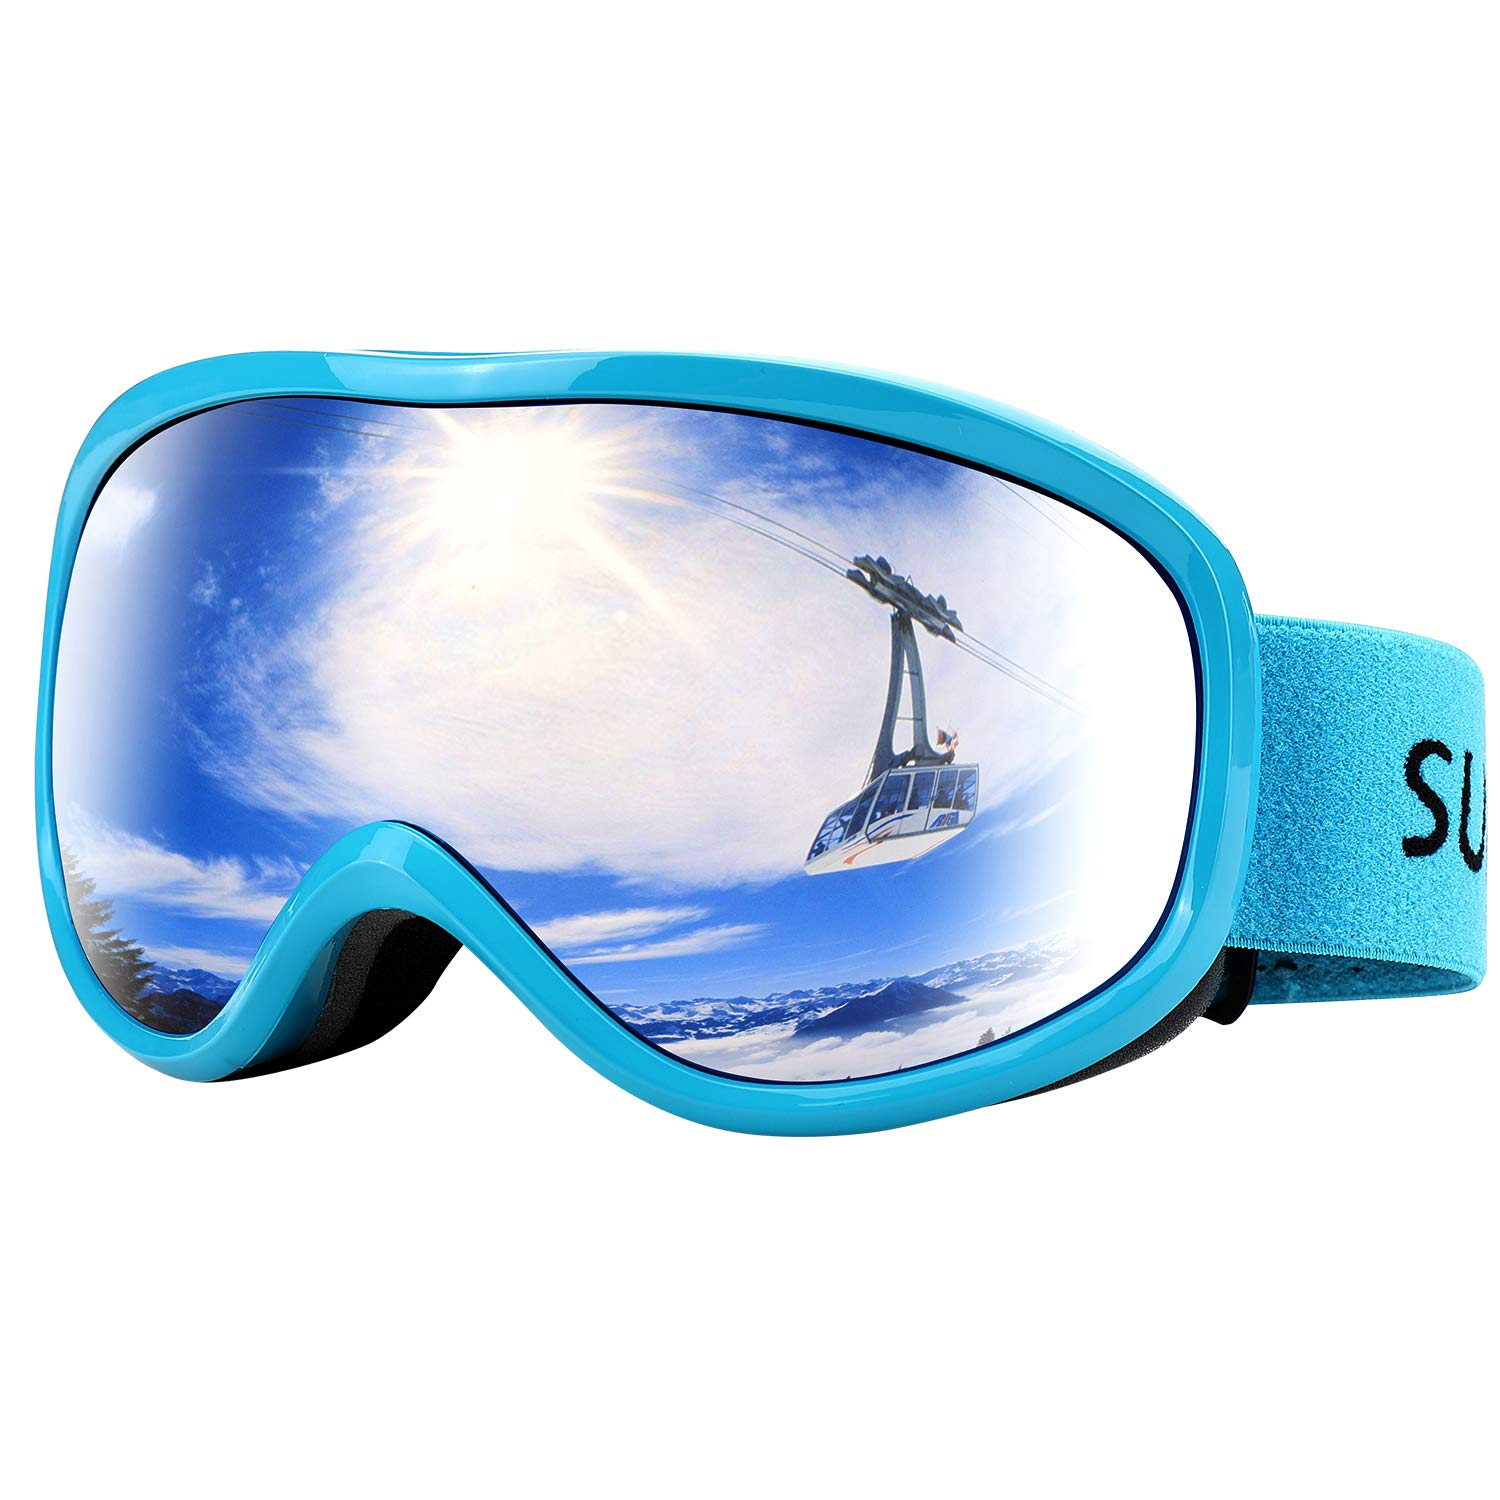 Supertrip Goggles Anti Fog Protection Snowboard